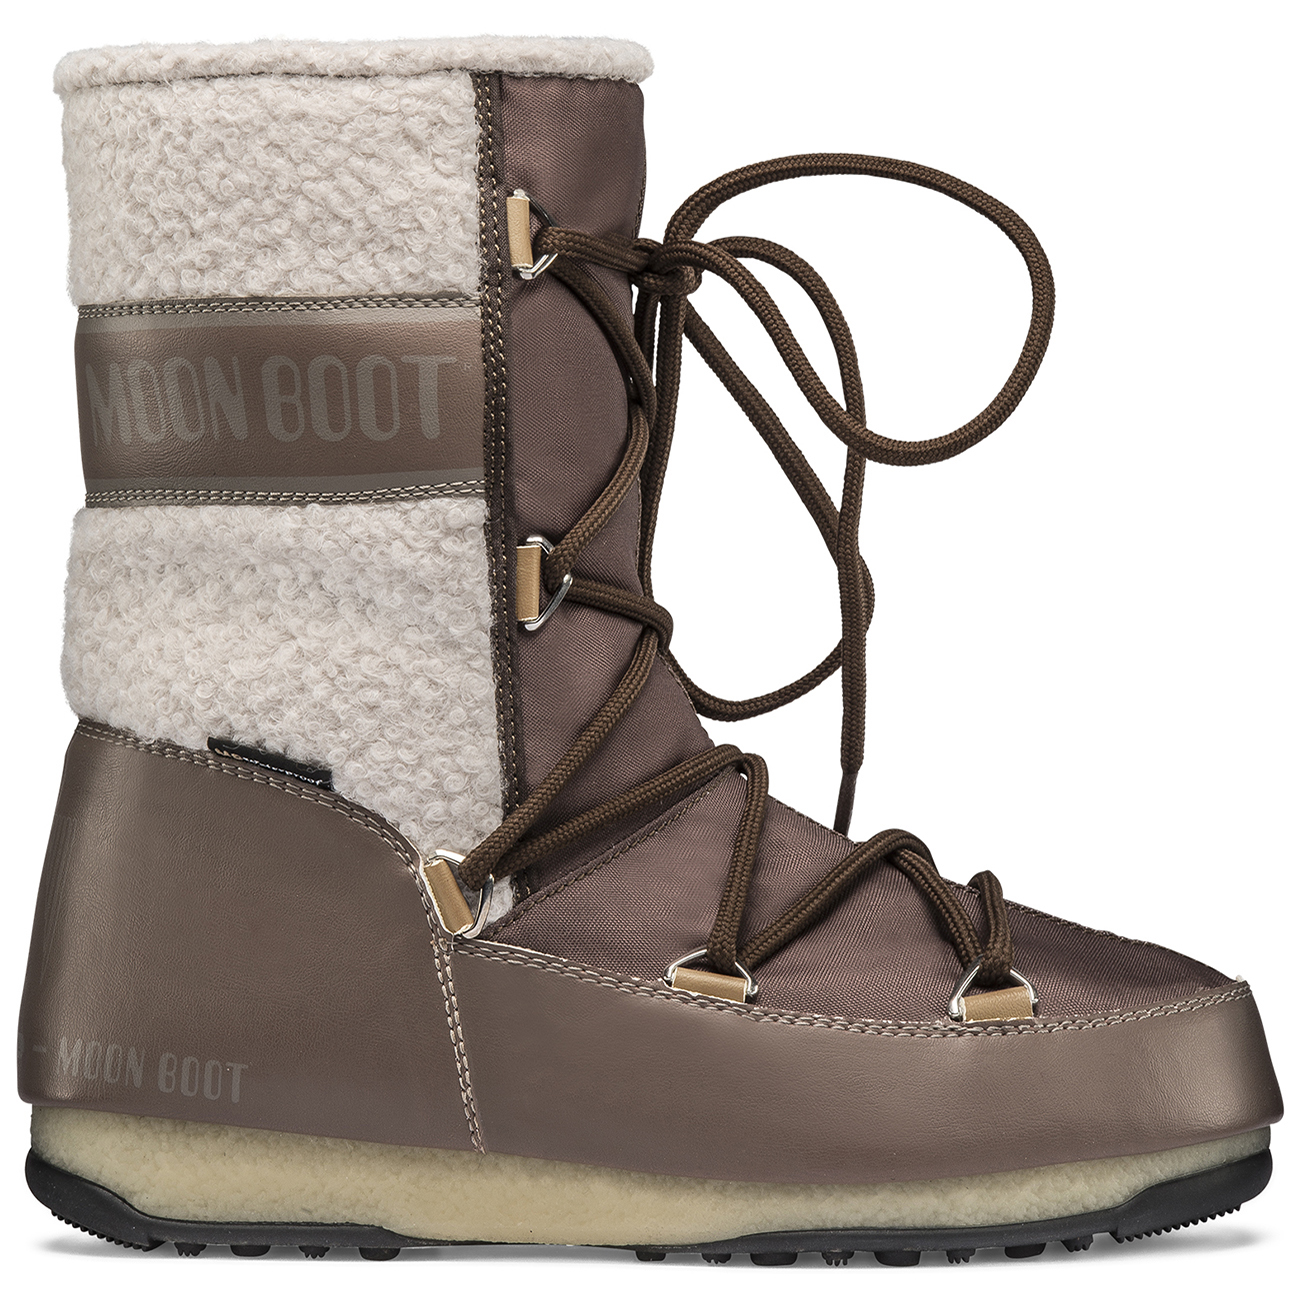 Moon Boot Monaco Wool Mid Waterproof